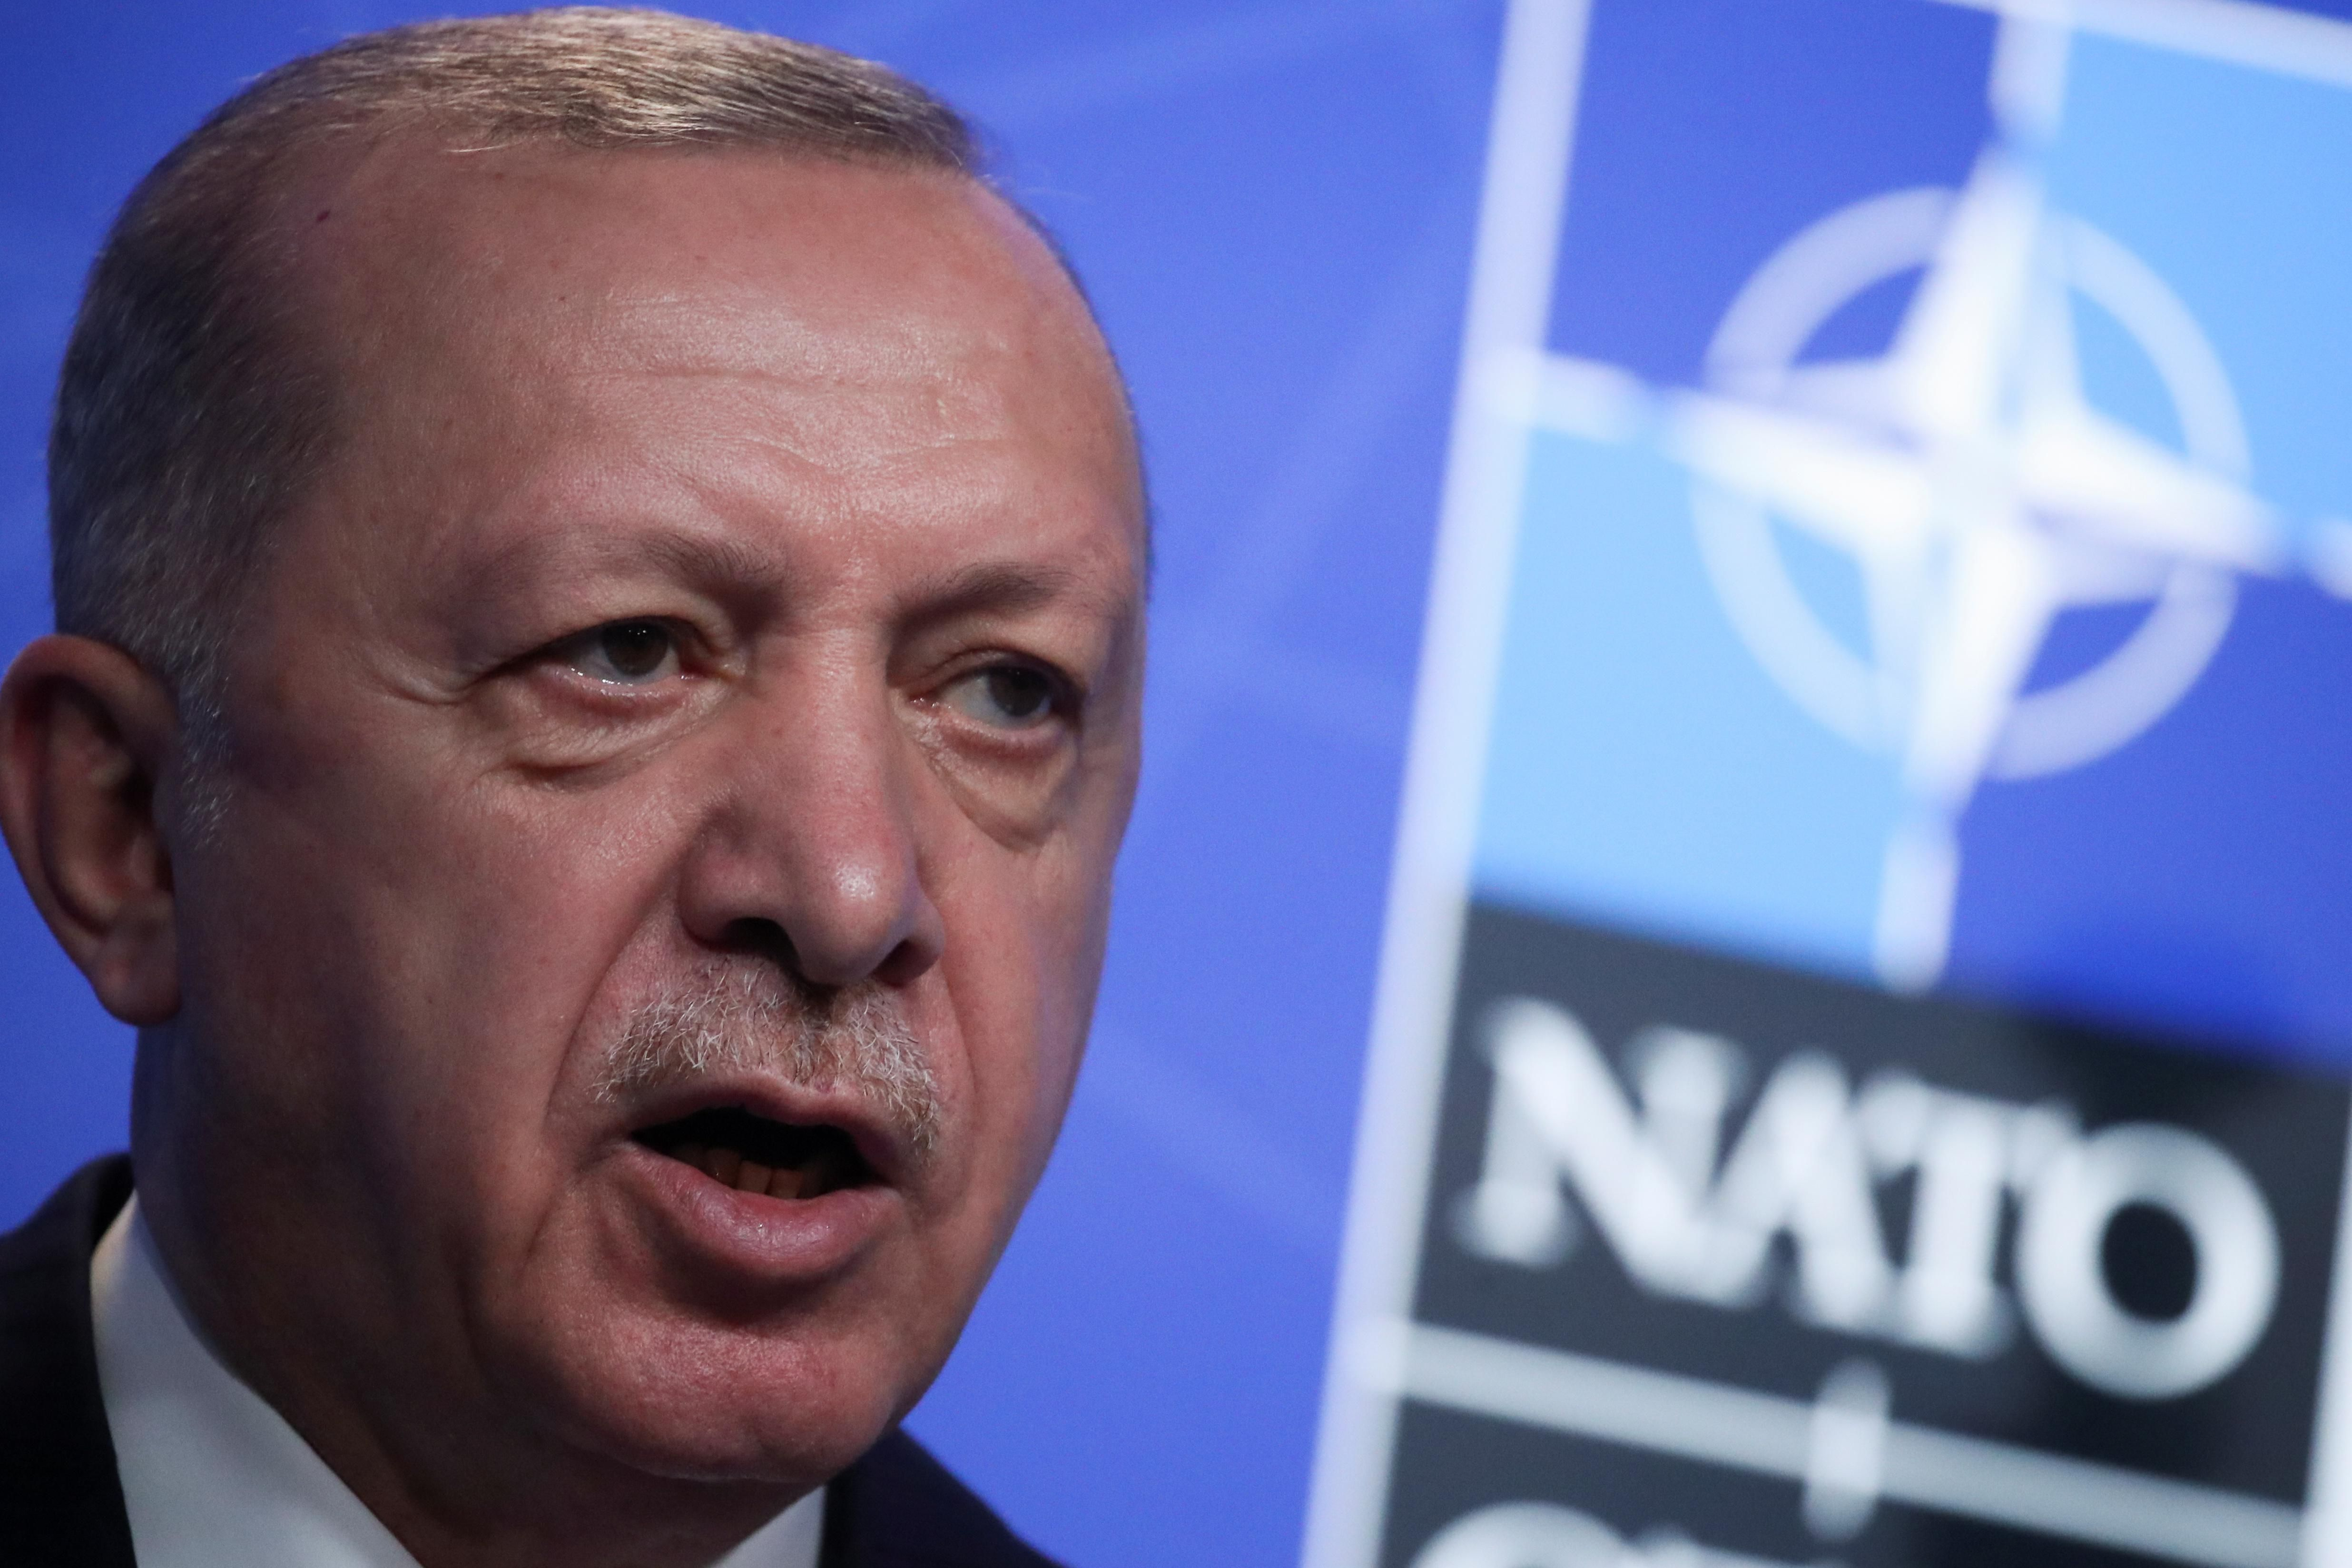 Turkey's President Tayyip Erdogan holds a news conference during the NATO summit at the Alliance's headquarters in Brussels, Belgium June 14, 2021